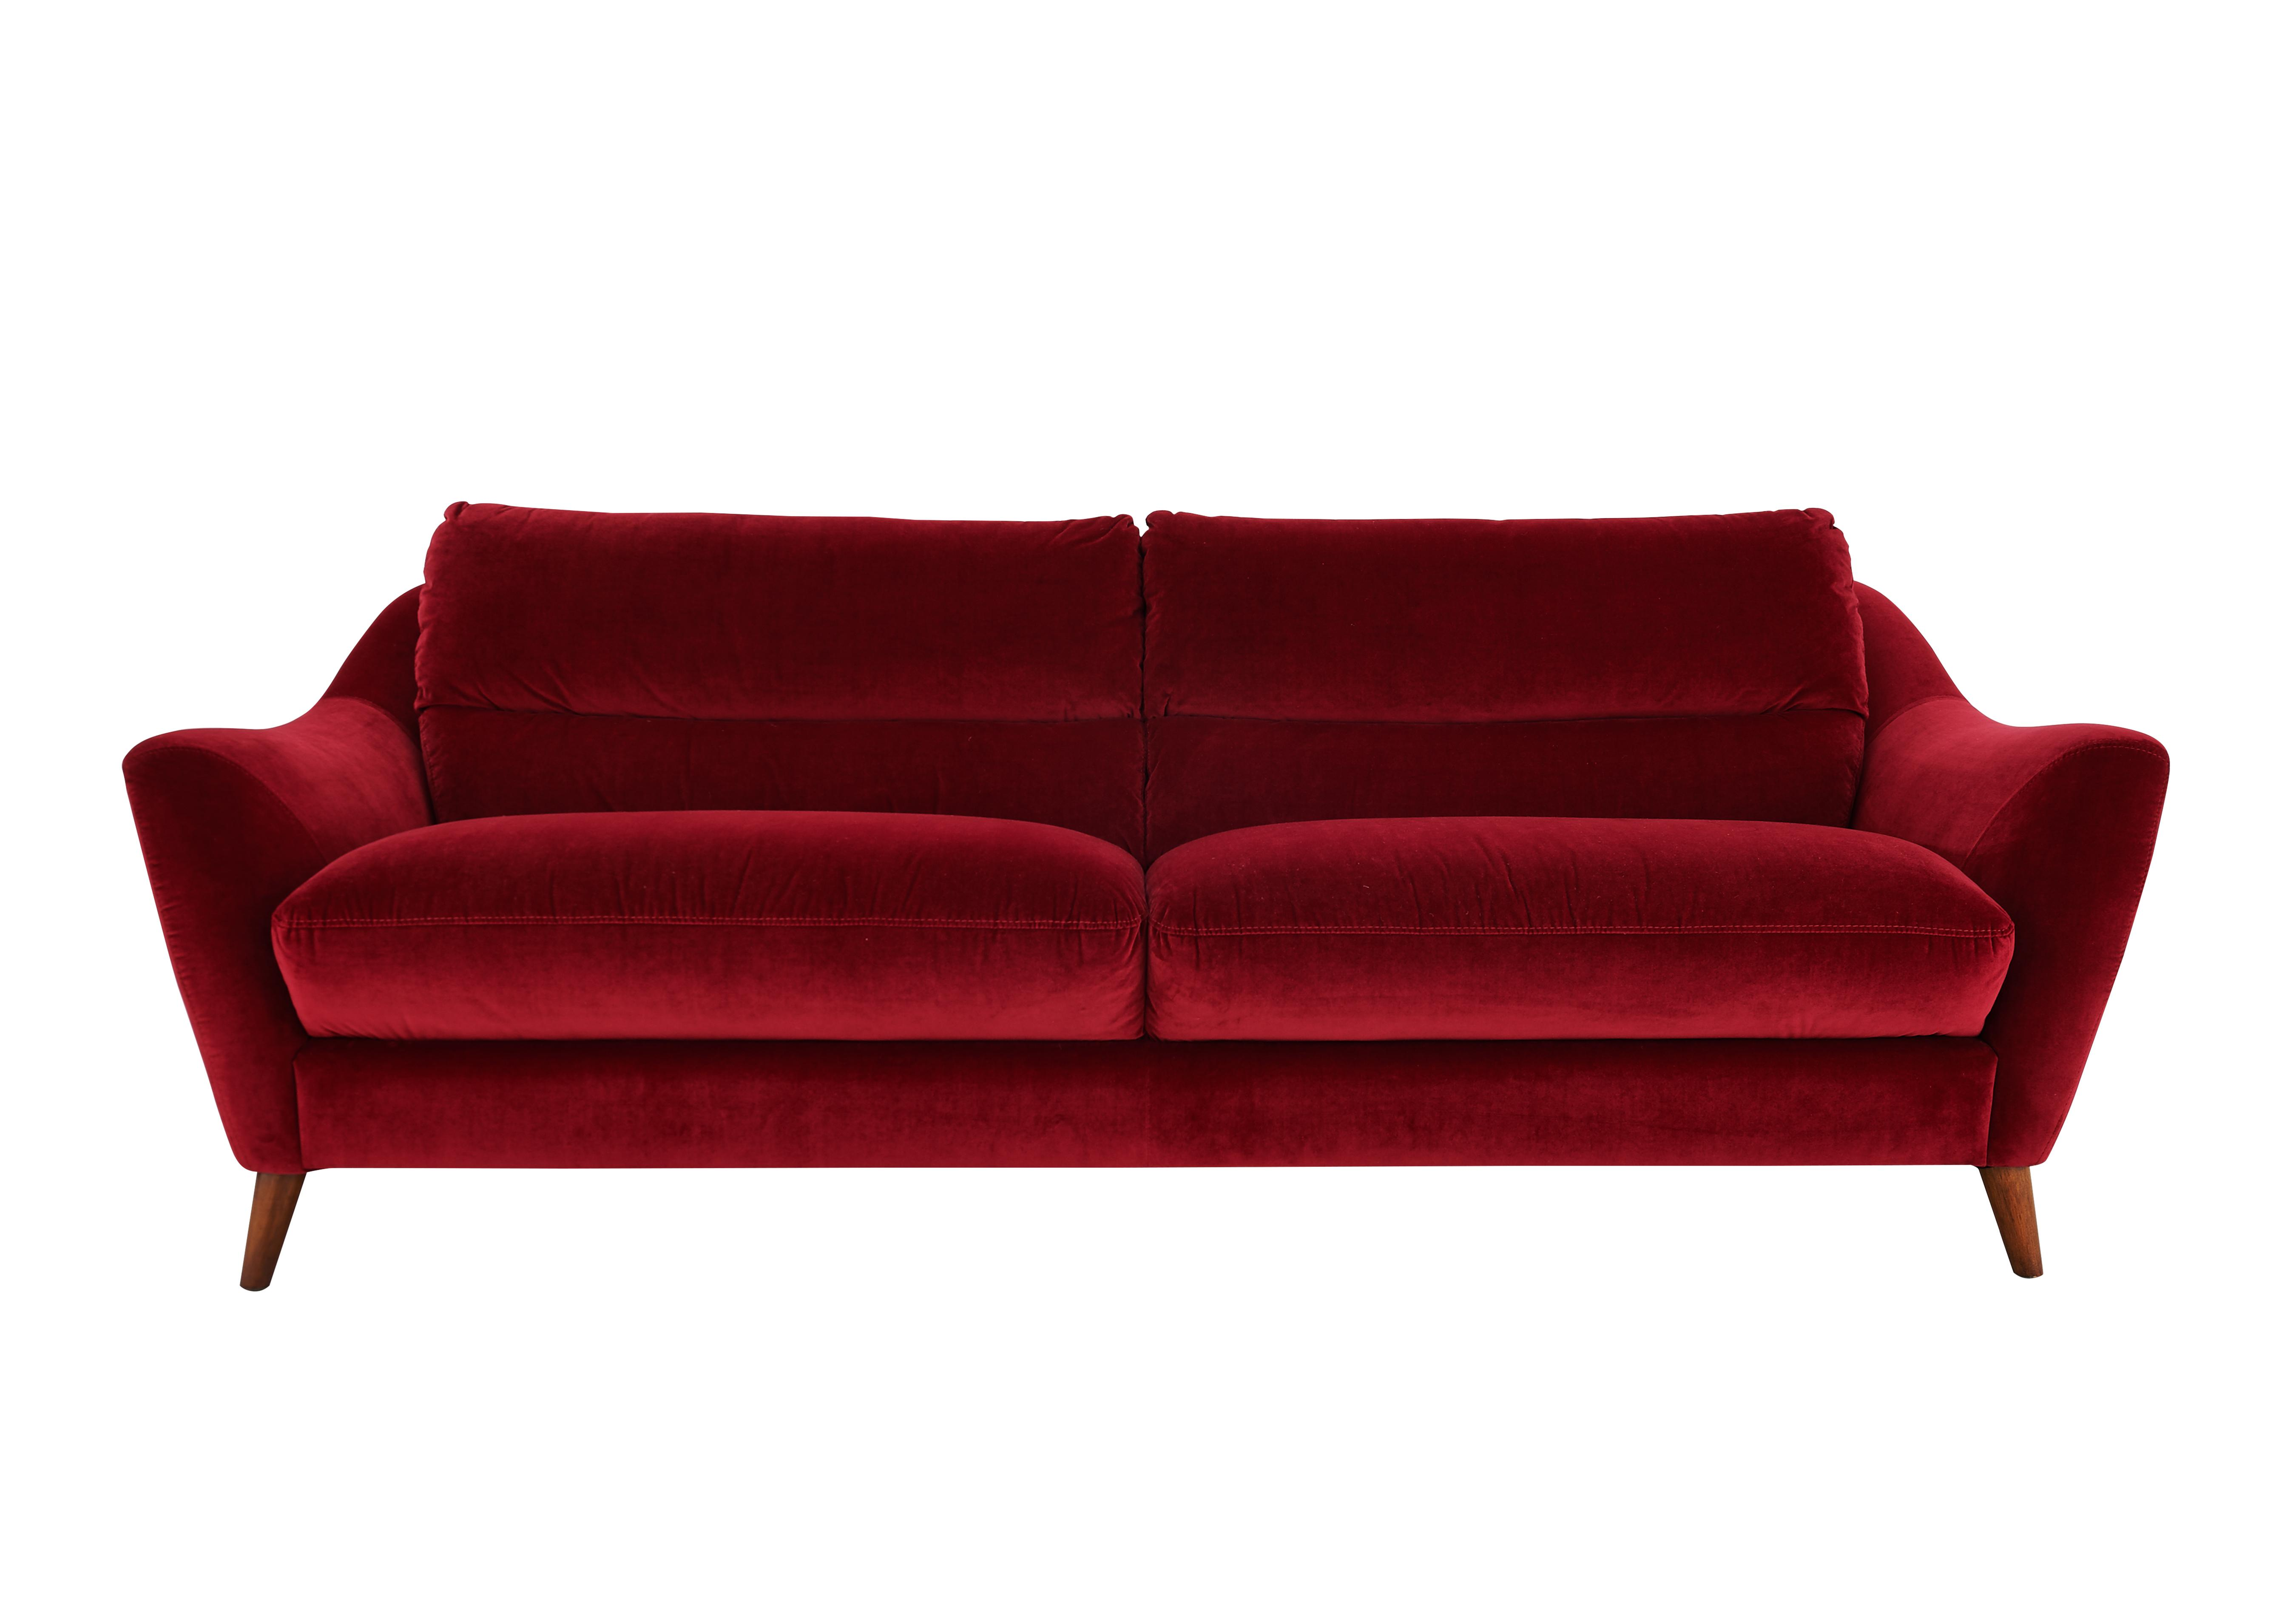 Compact remy 3 seater fabric sofa. loading images ffukdac